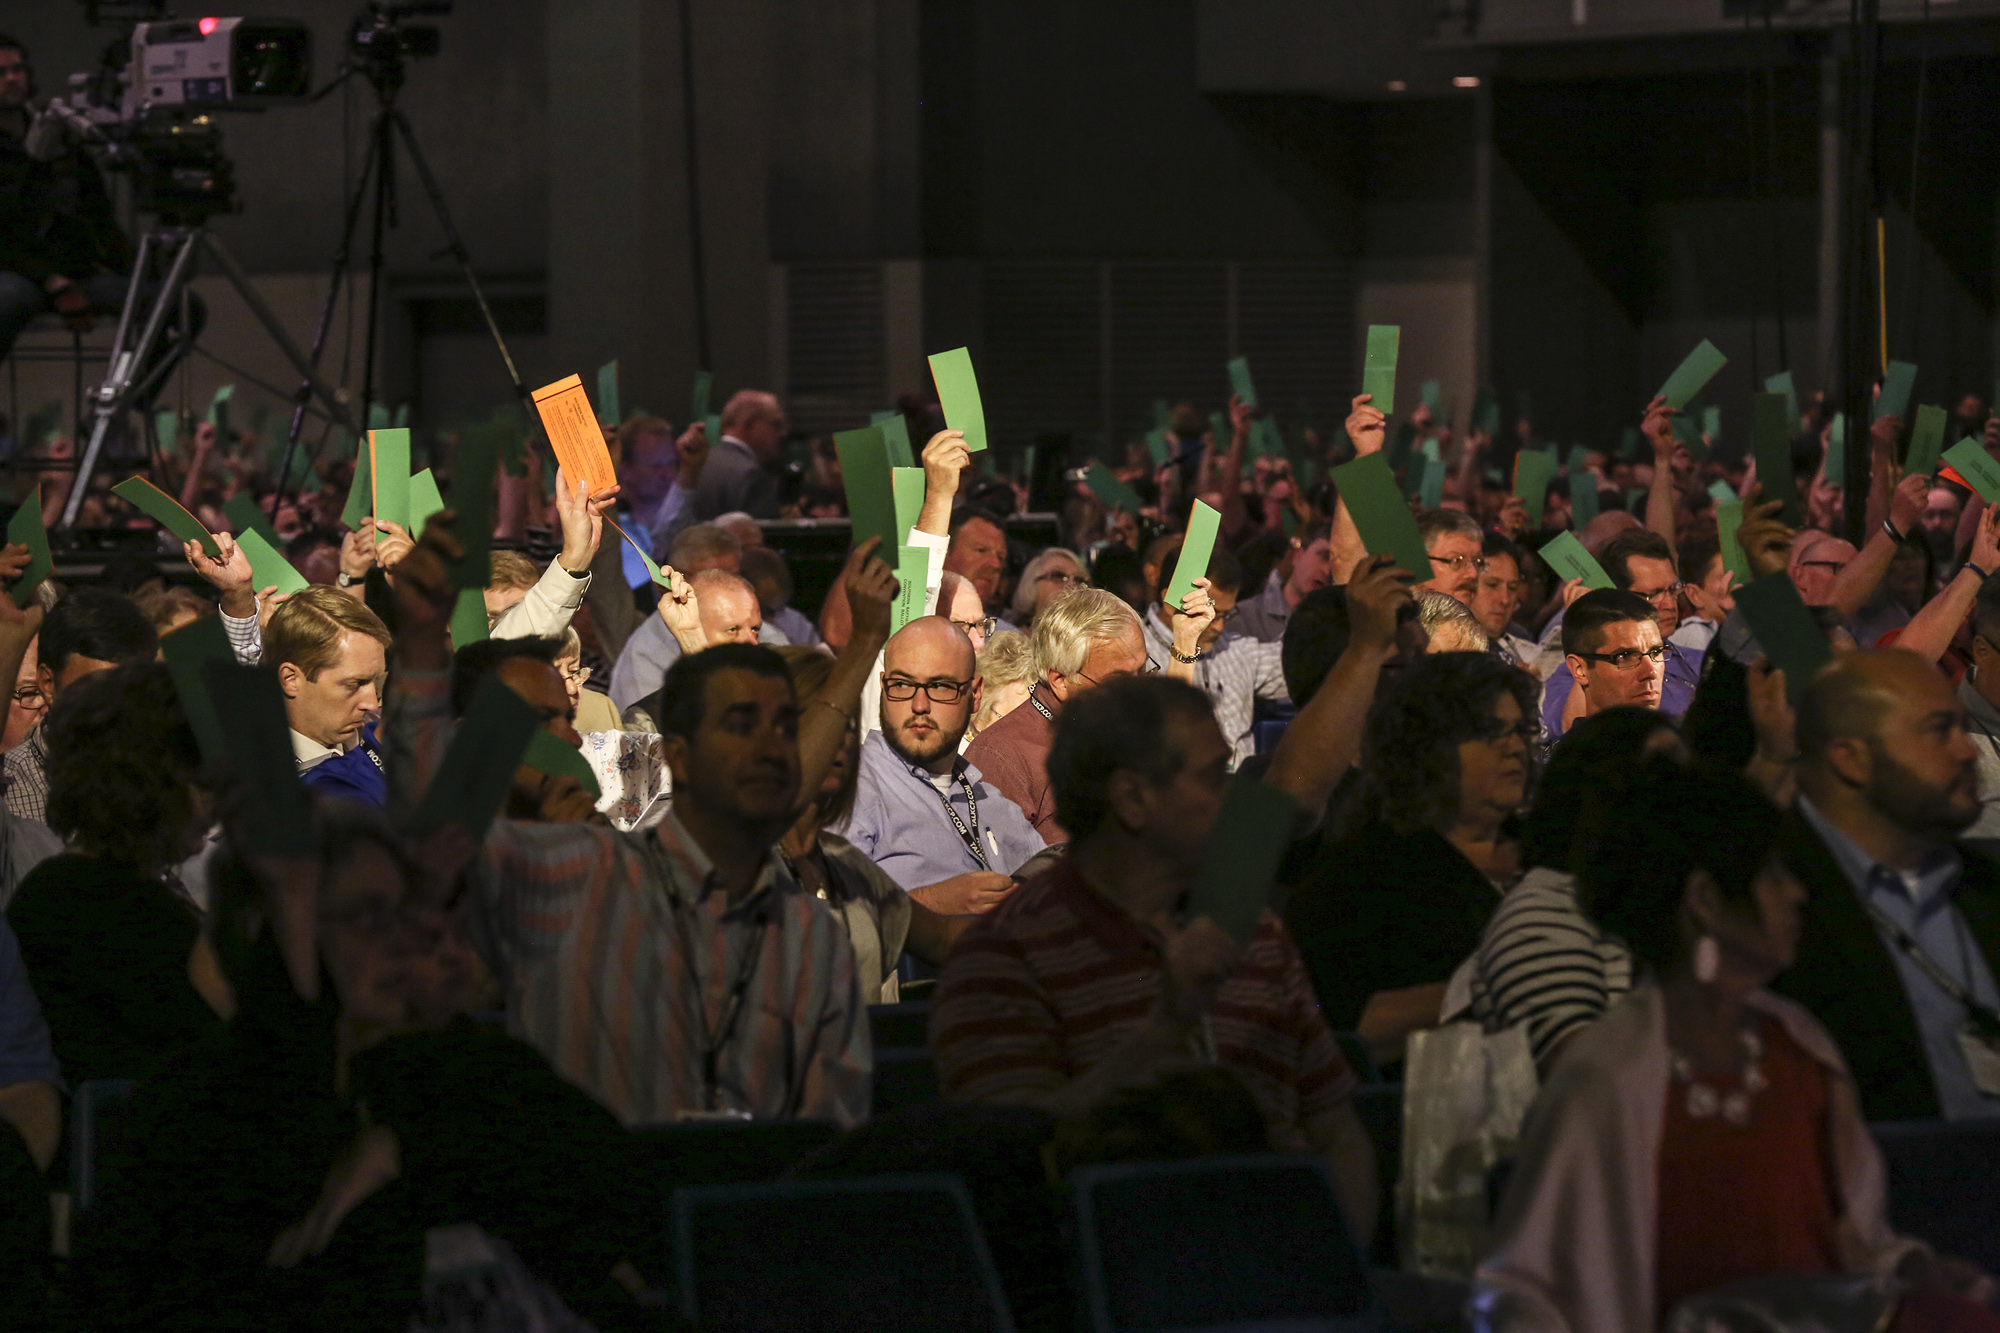 Messengers at the annual meeting of the Southern Baptist Convention cast ballots for a resolution during the afternoon session Tuesday, June 14 in St. Louis. Photo by Chris Carter, Copyright © 2016 Baptist Press, Southern Baptist Convention